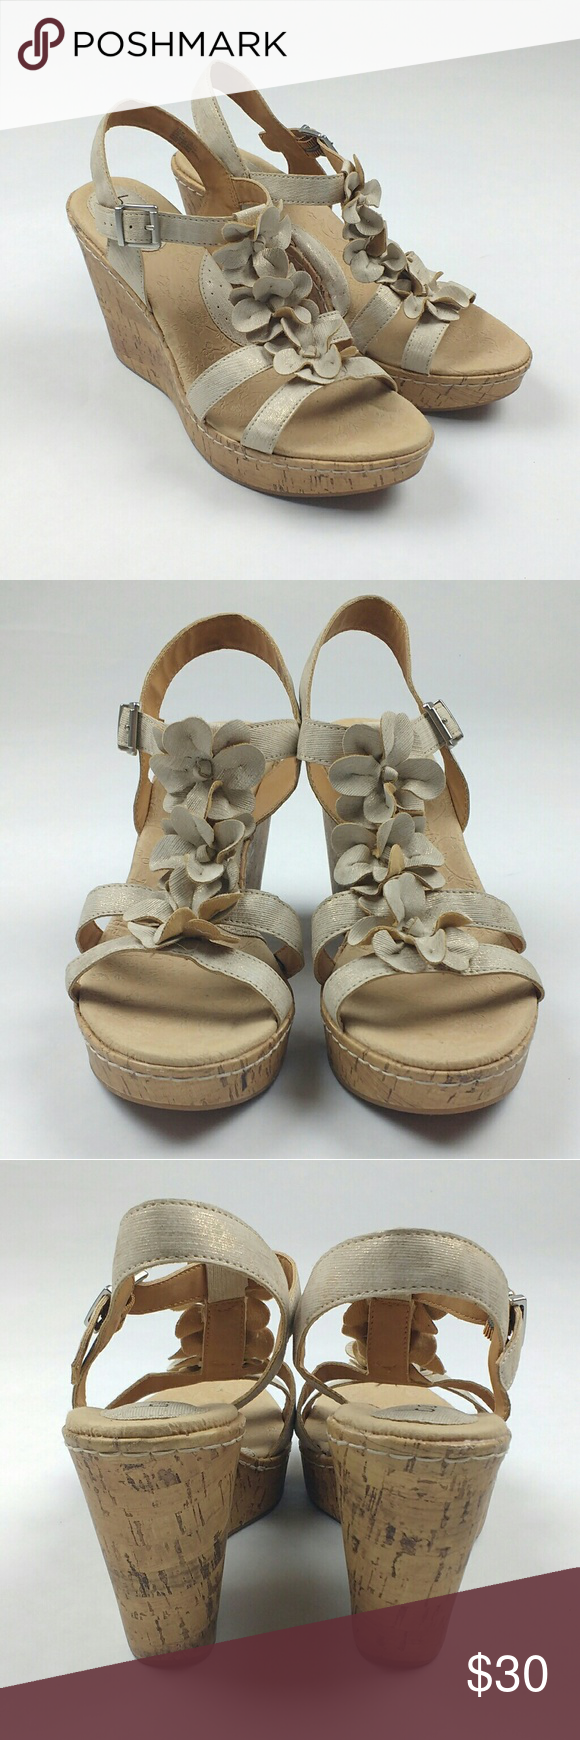 7618e0686a71 BOC Jill Wedge Sandal Rose Gold Metallic BOC by Born wedge sandals in great  condition.